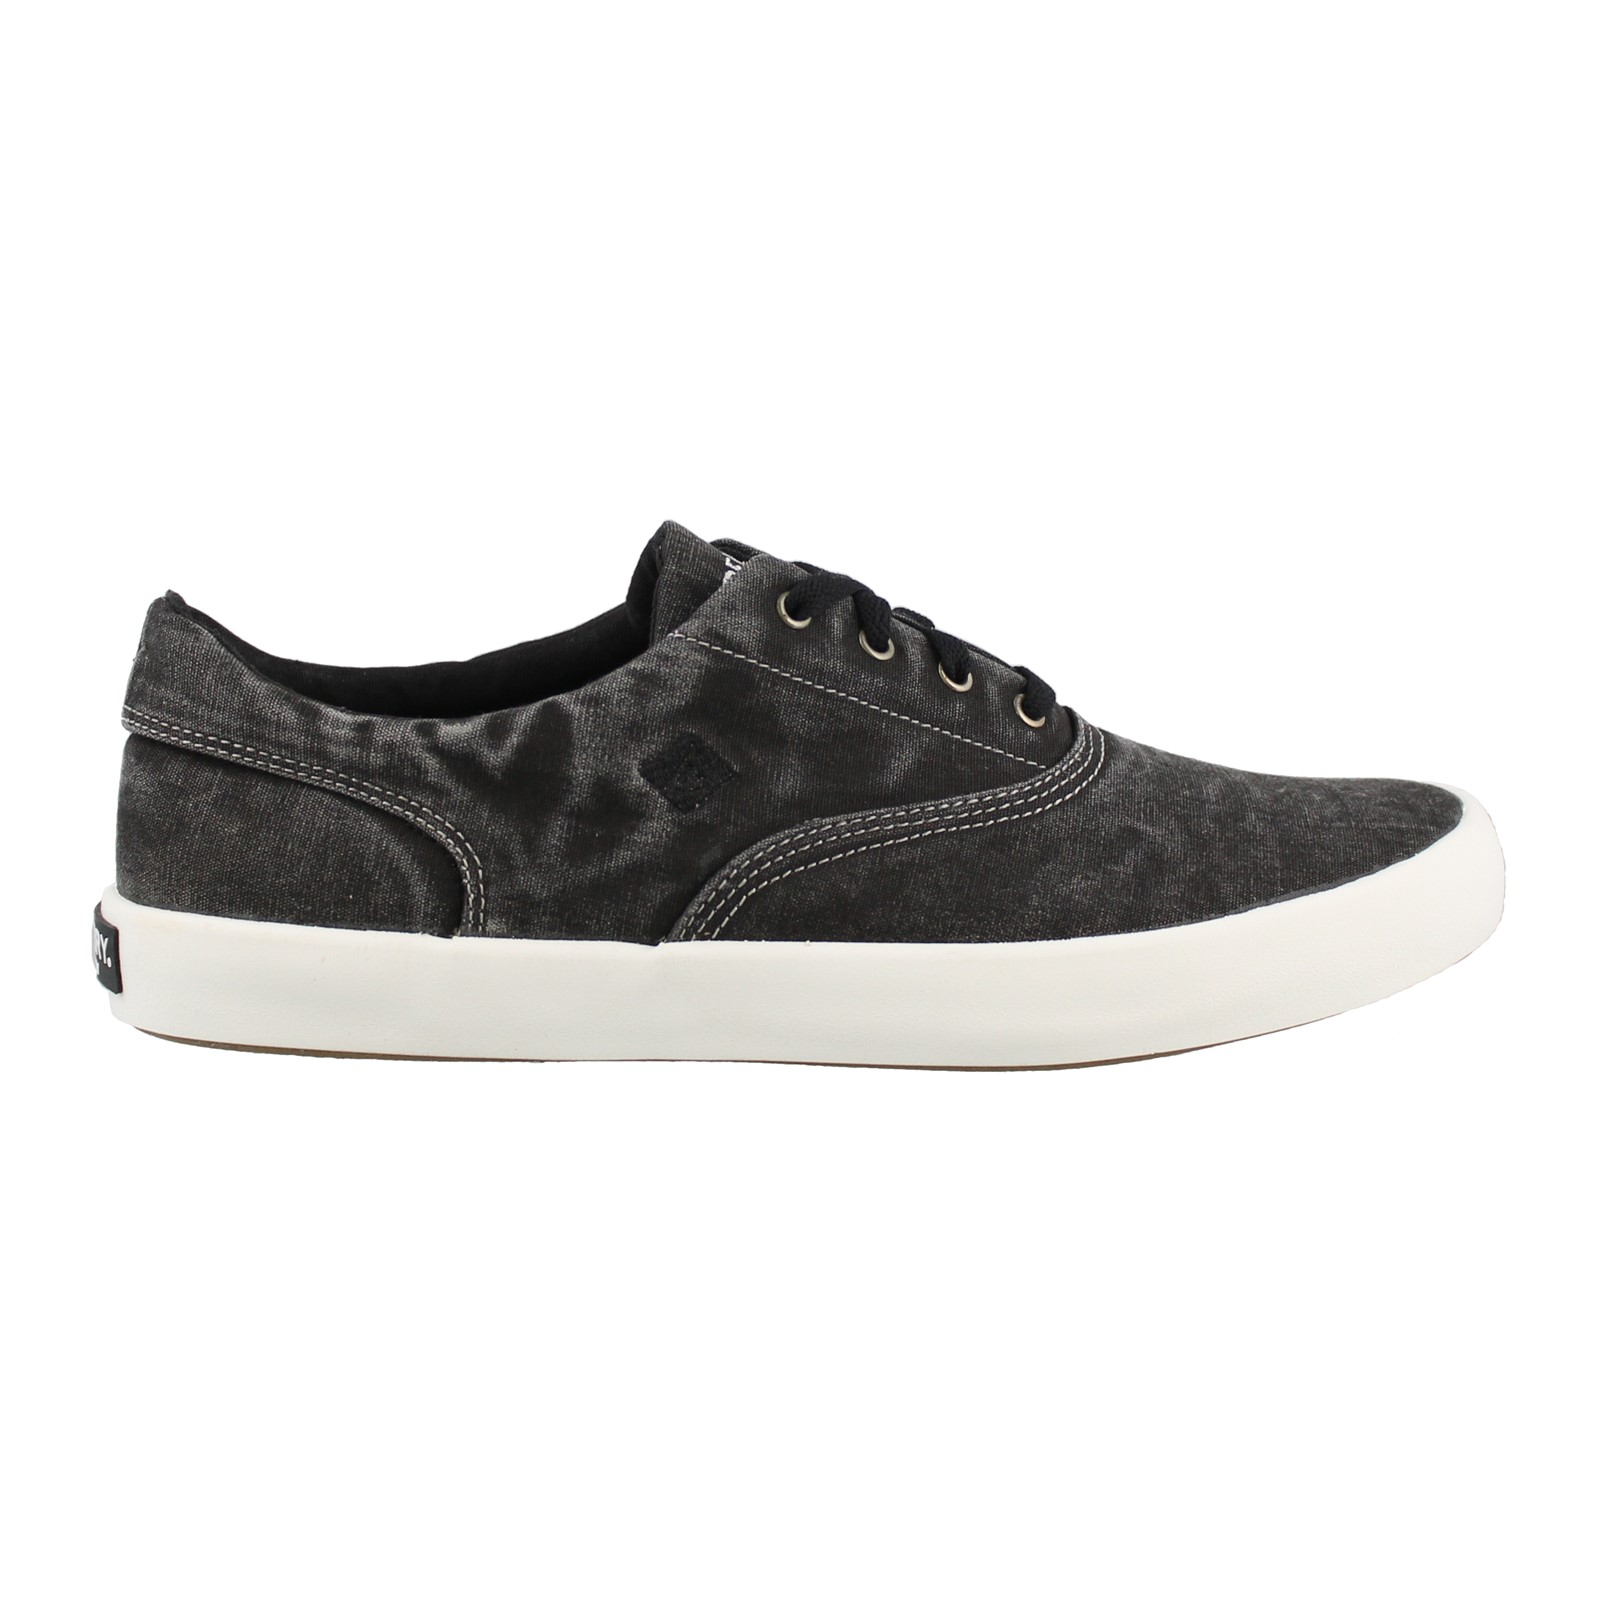 Men's Sperry, Wahoo CVO Lace up